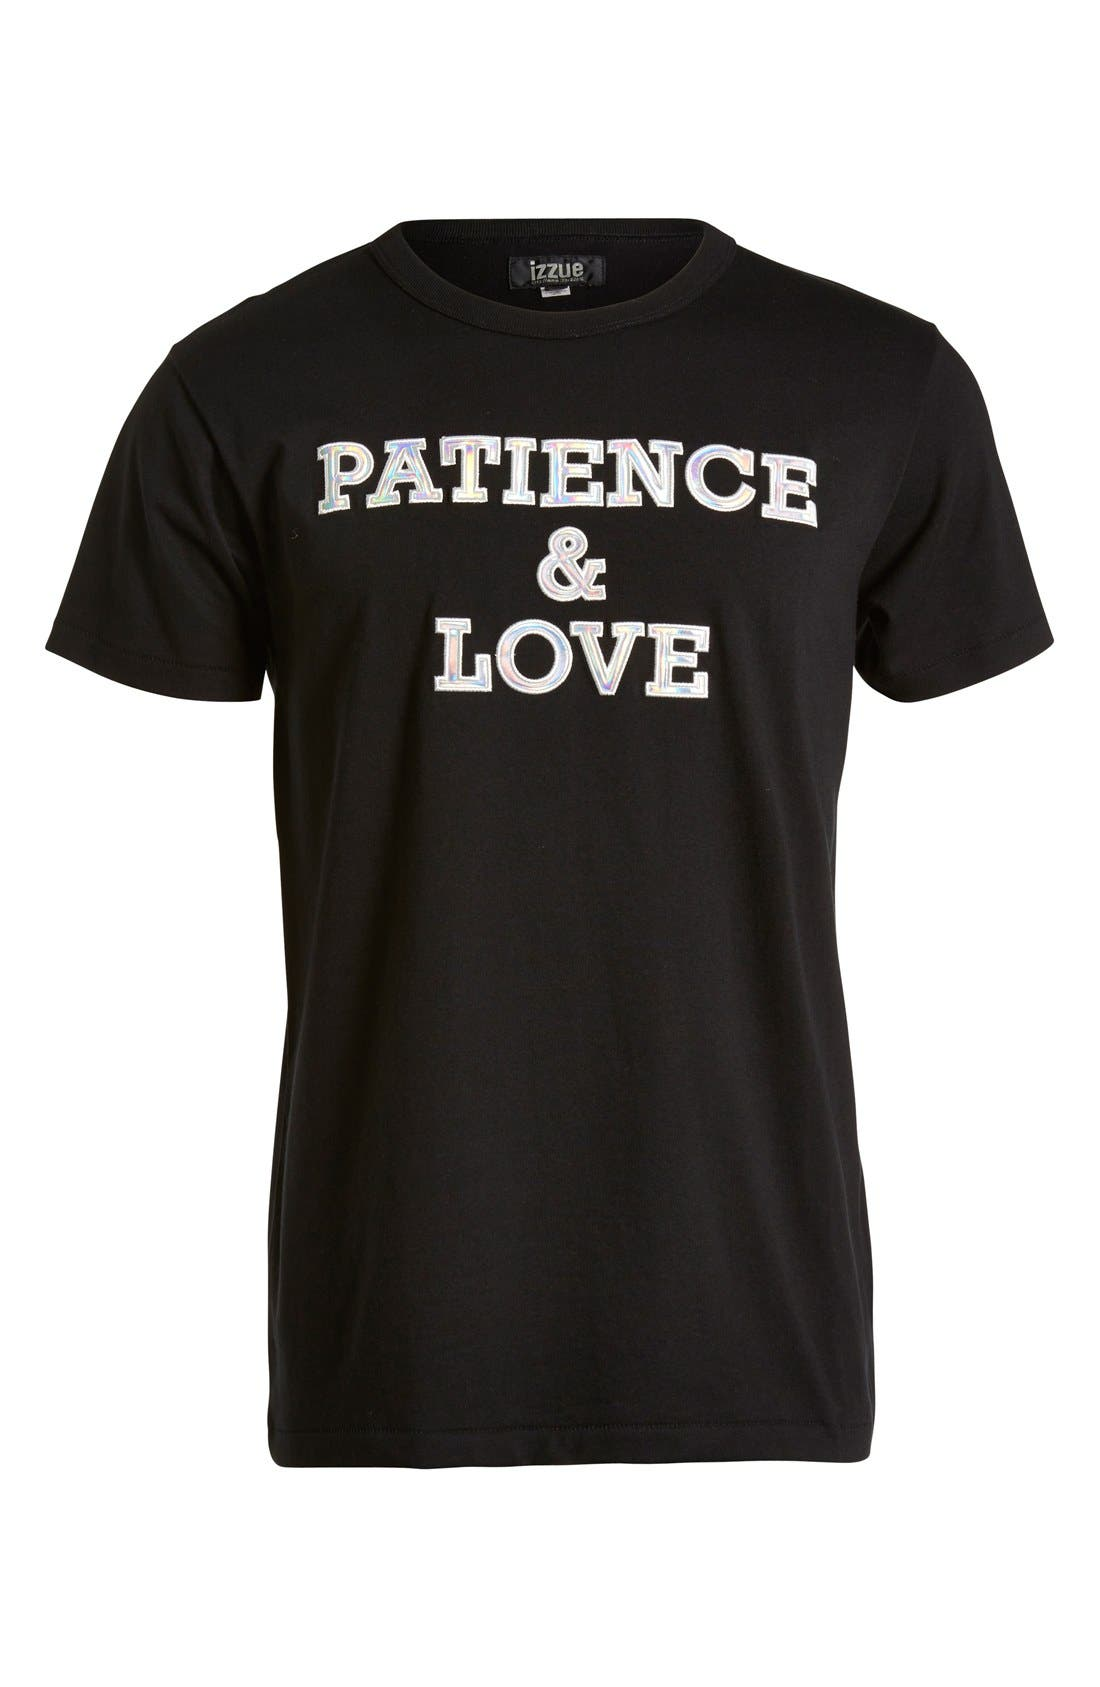 'Patience & Love' Iridescent Graphic T-Shirt,                             Main thumbnail 1, color,                             001